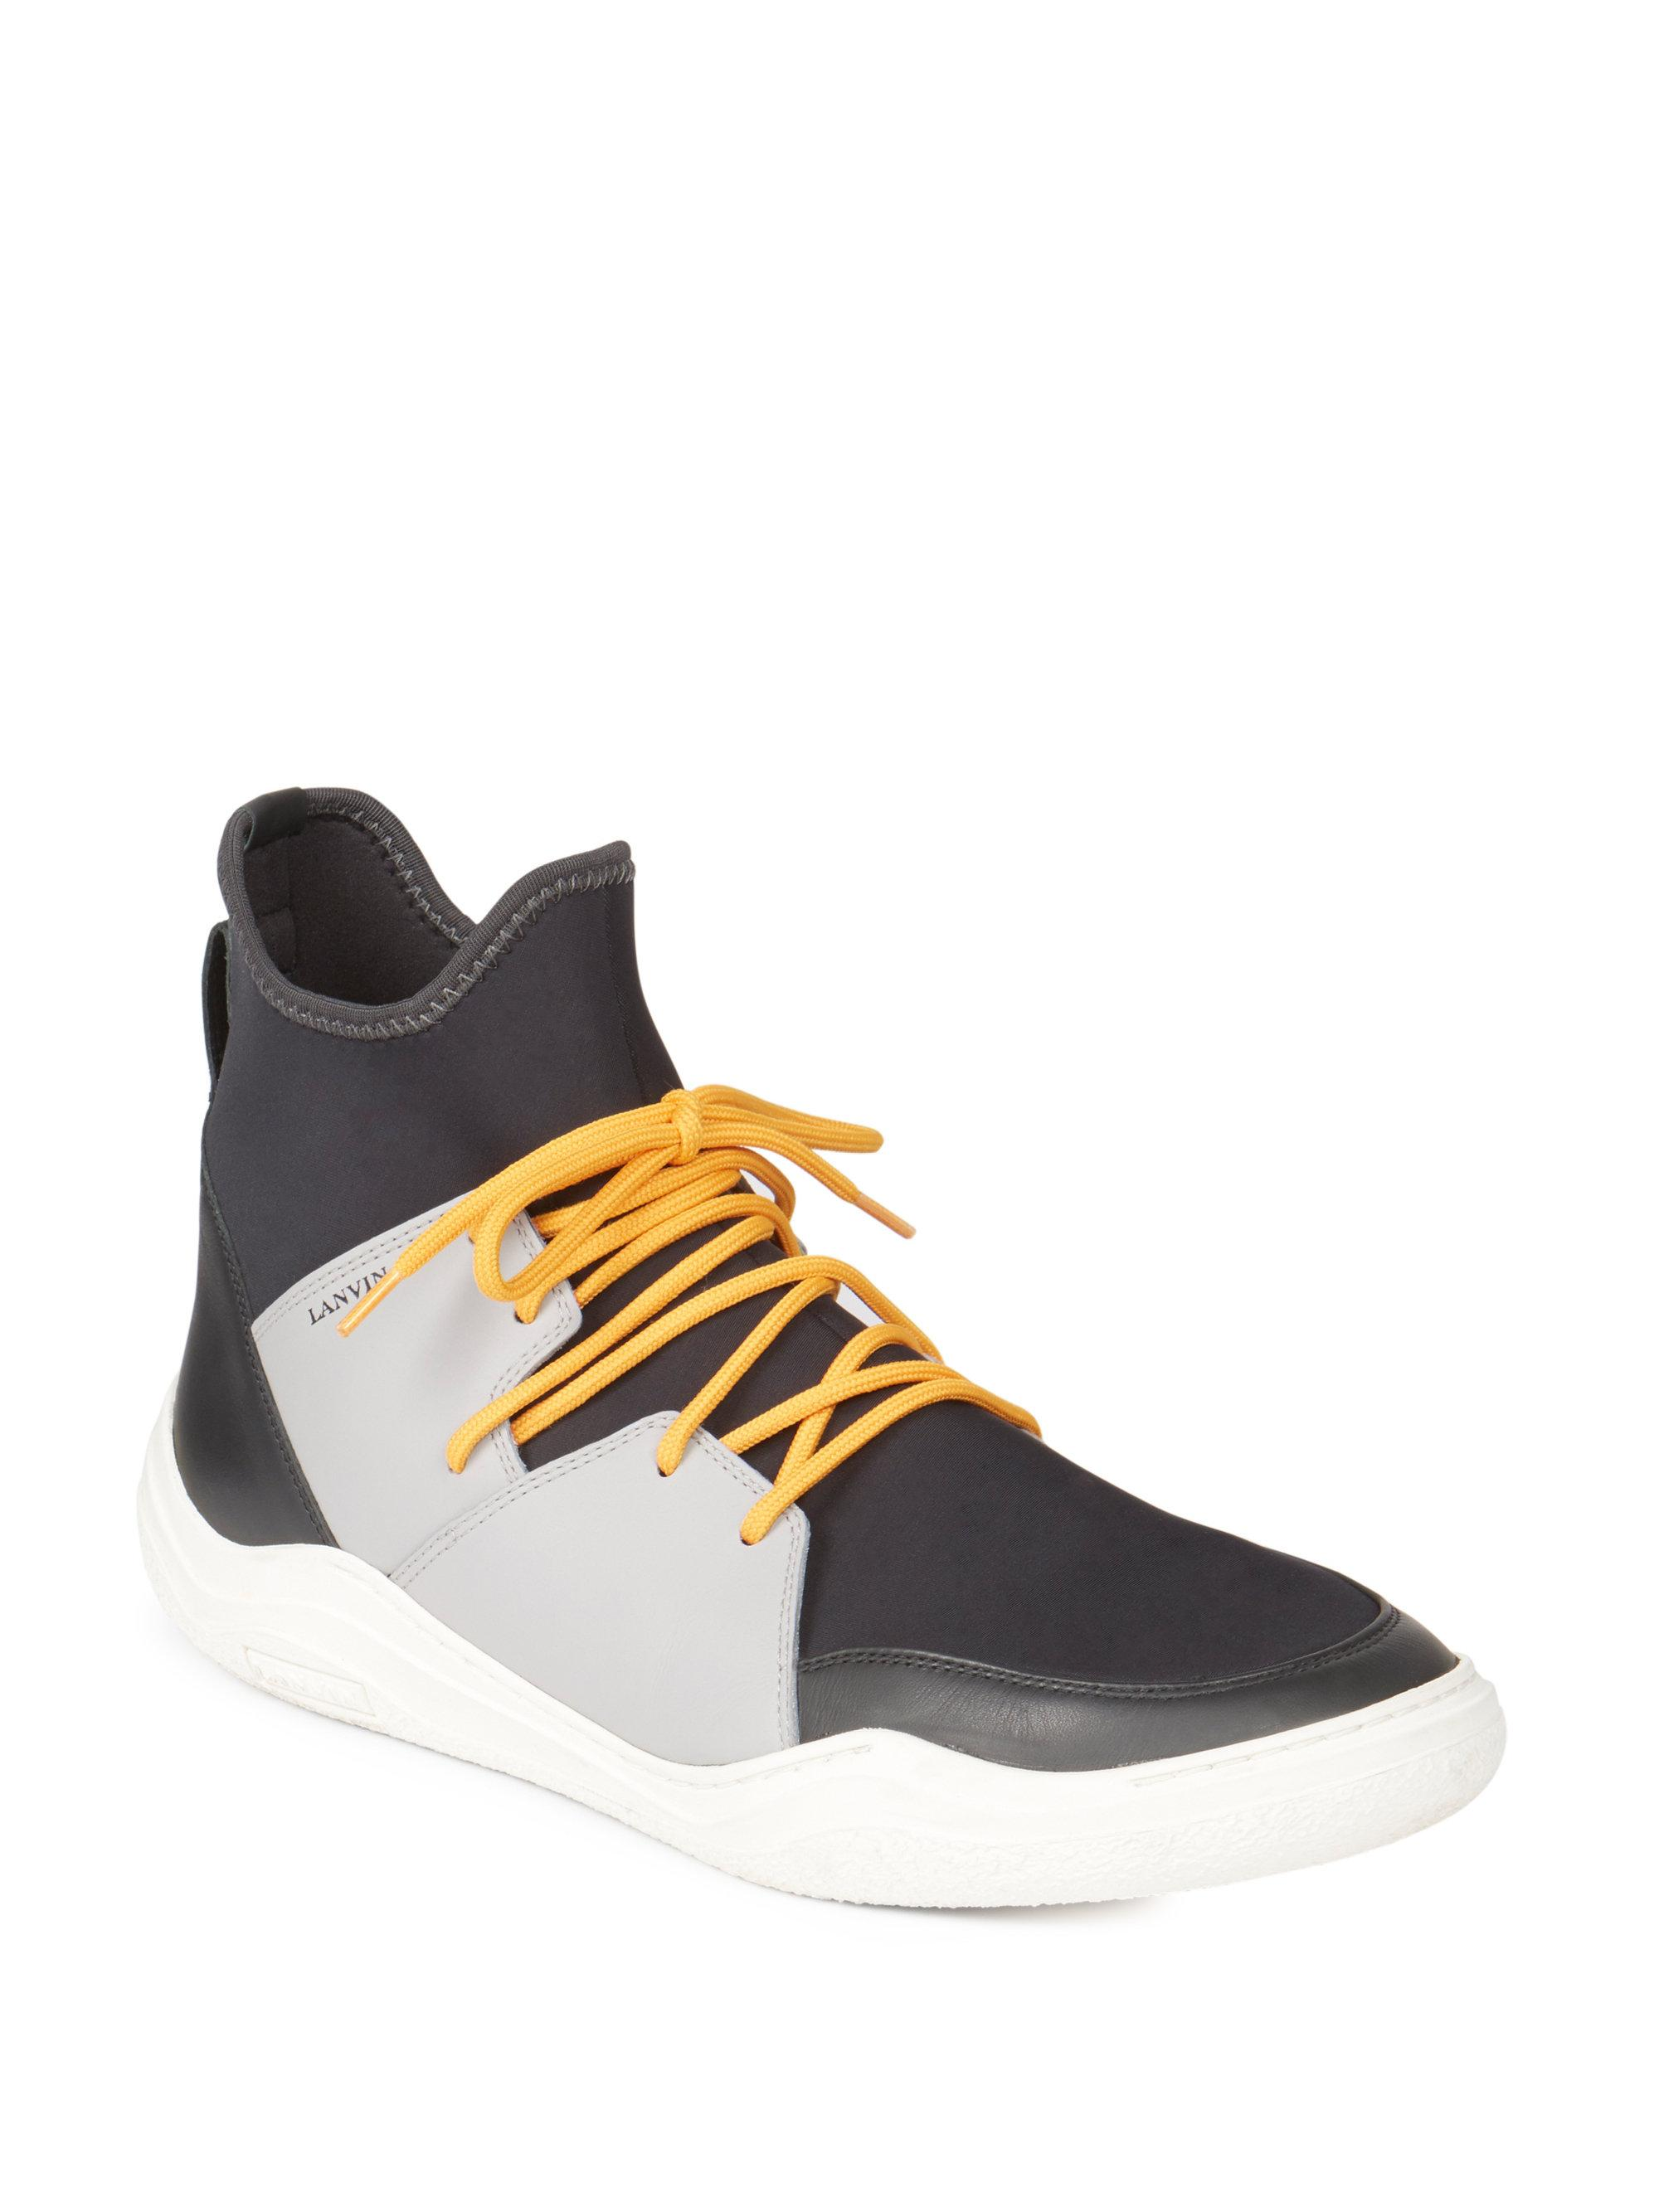 LanvinKnit Neoprene High-Top Sneakers R71T5Xad